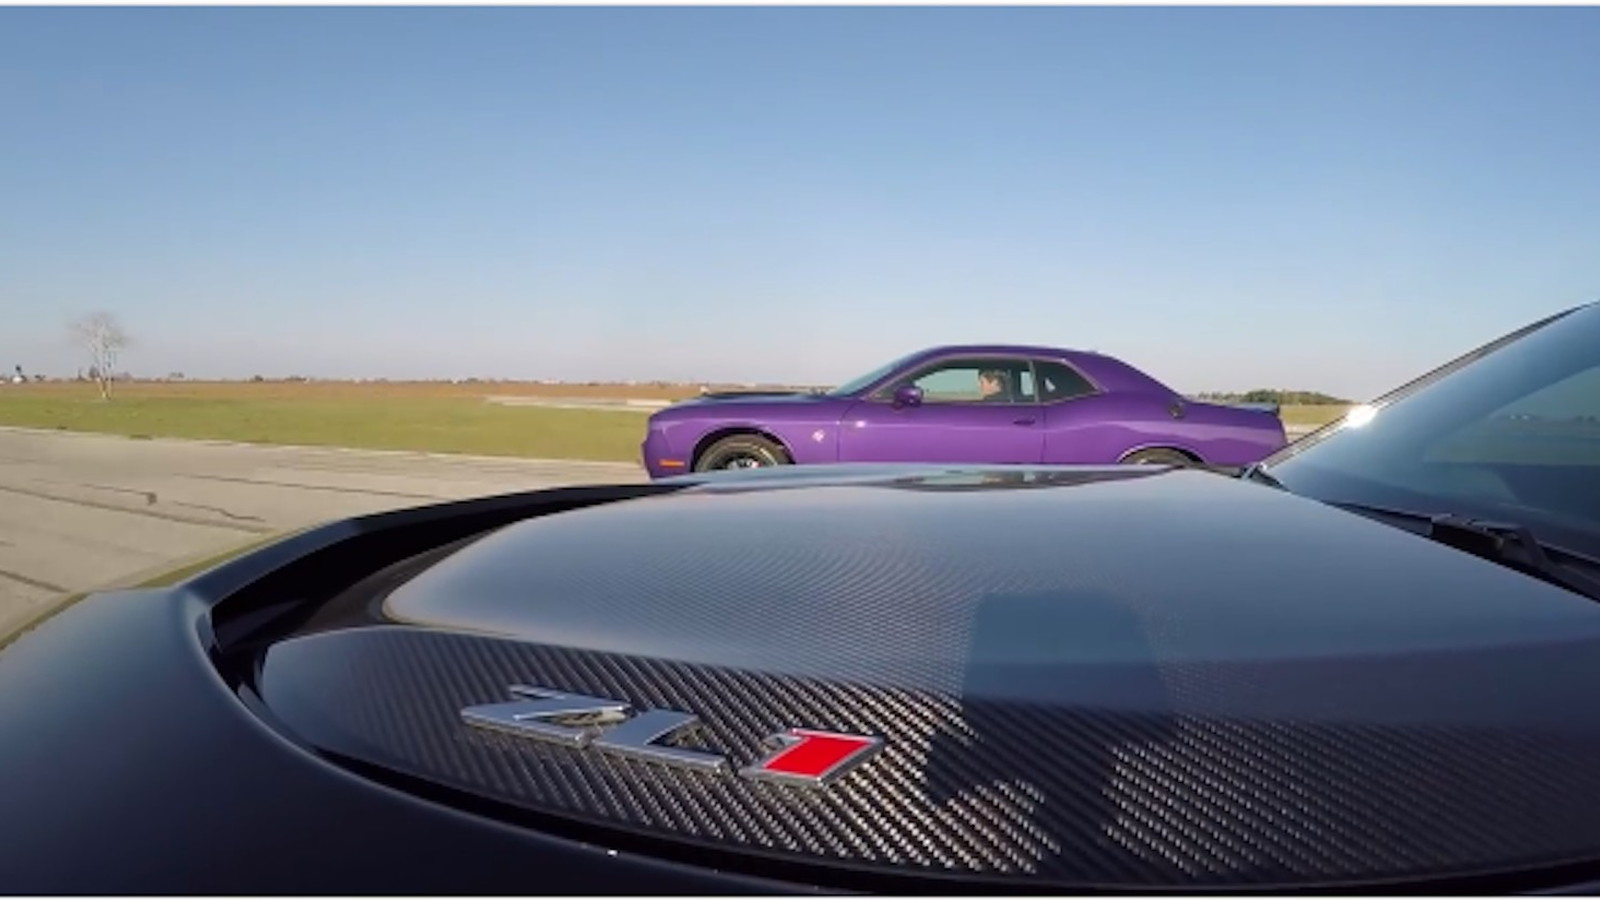 No more talking 2017 dodge challenger hellcat vs the 2017 chevy camaro zl1